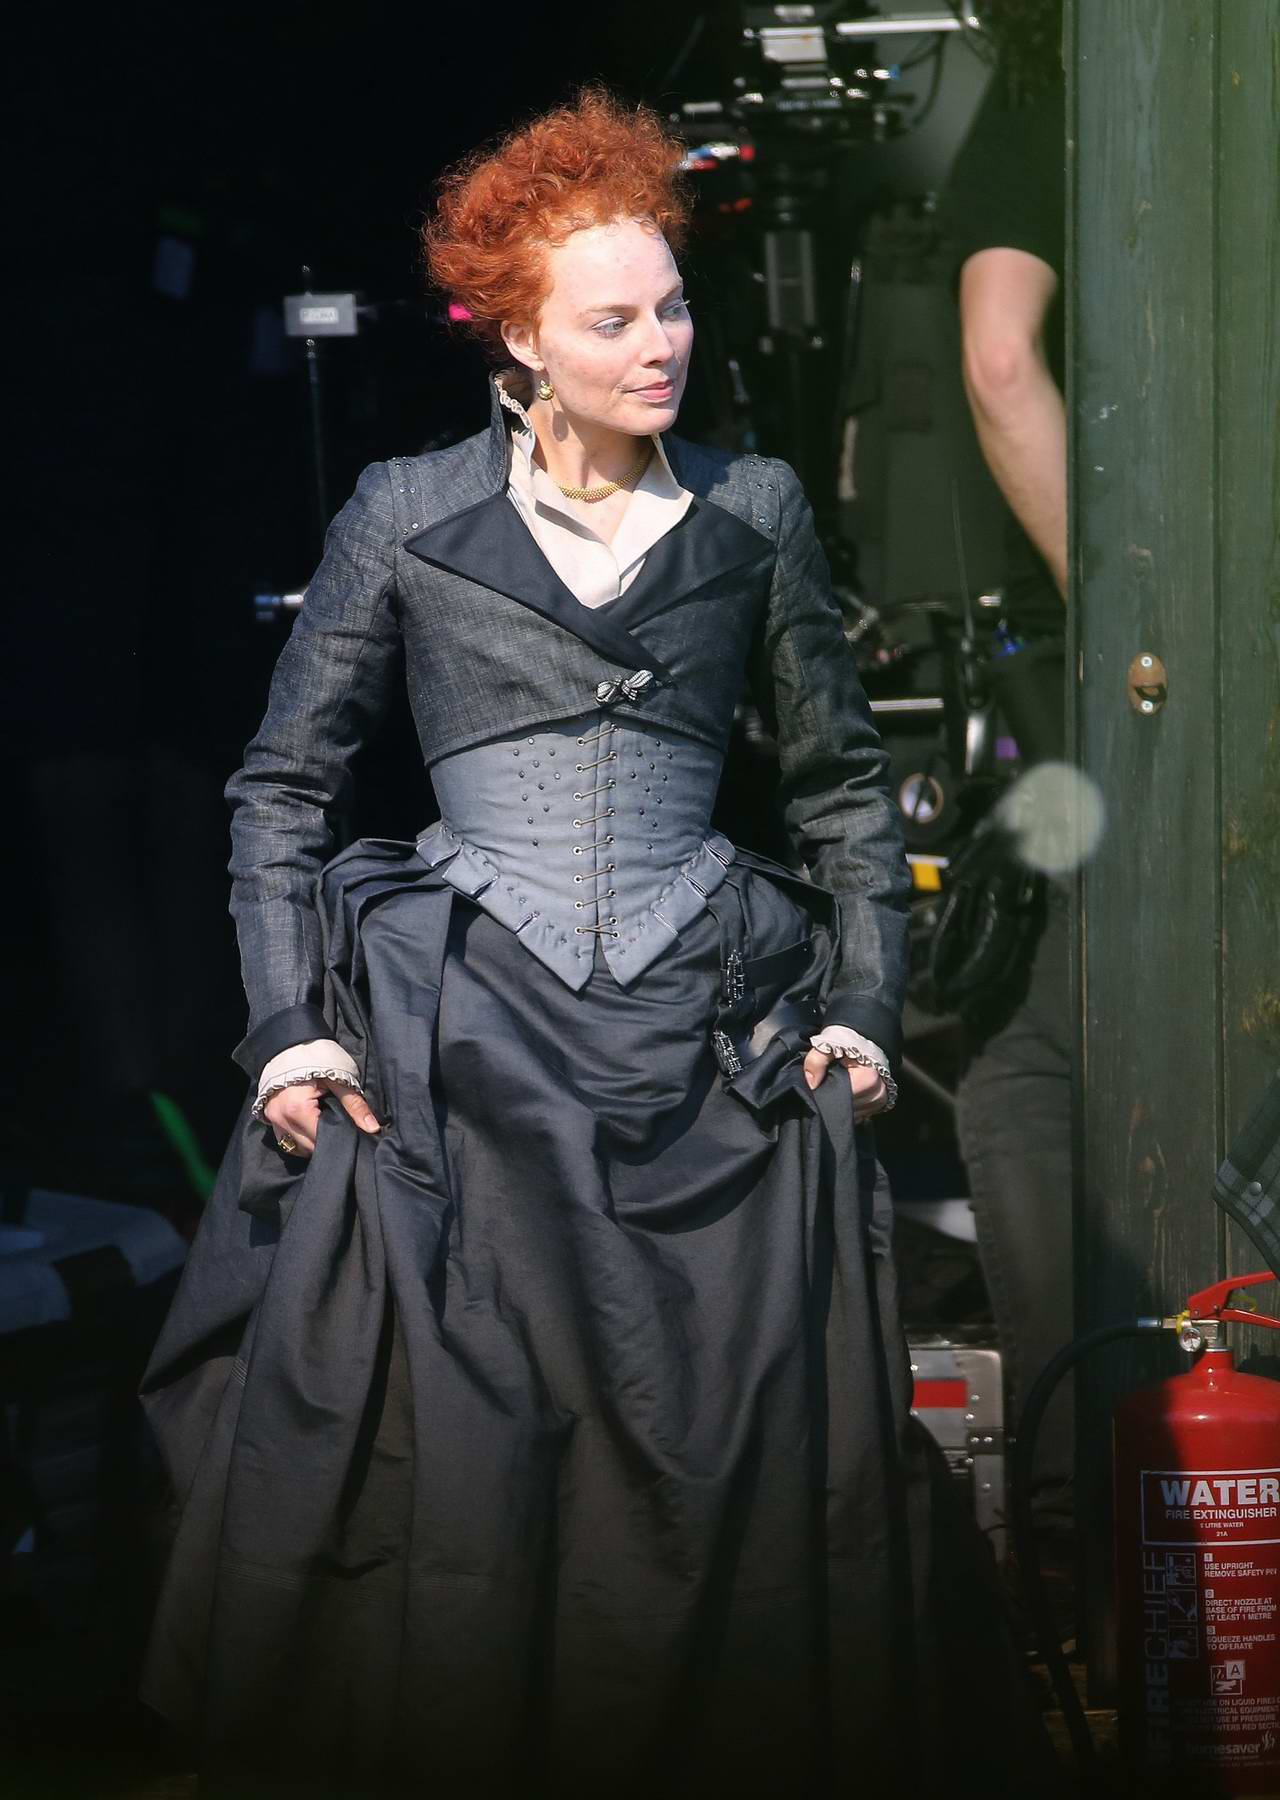 Margot Robbie looks completely unrecognisable as she transforms into Queen Elizabeth I for new film Mary Queen of Scots in Goldthorpe, UK